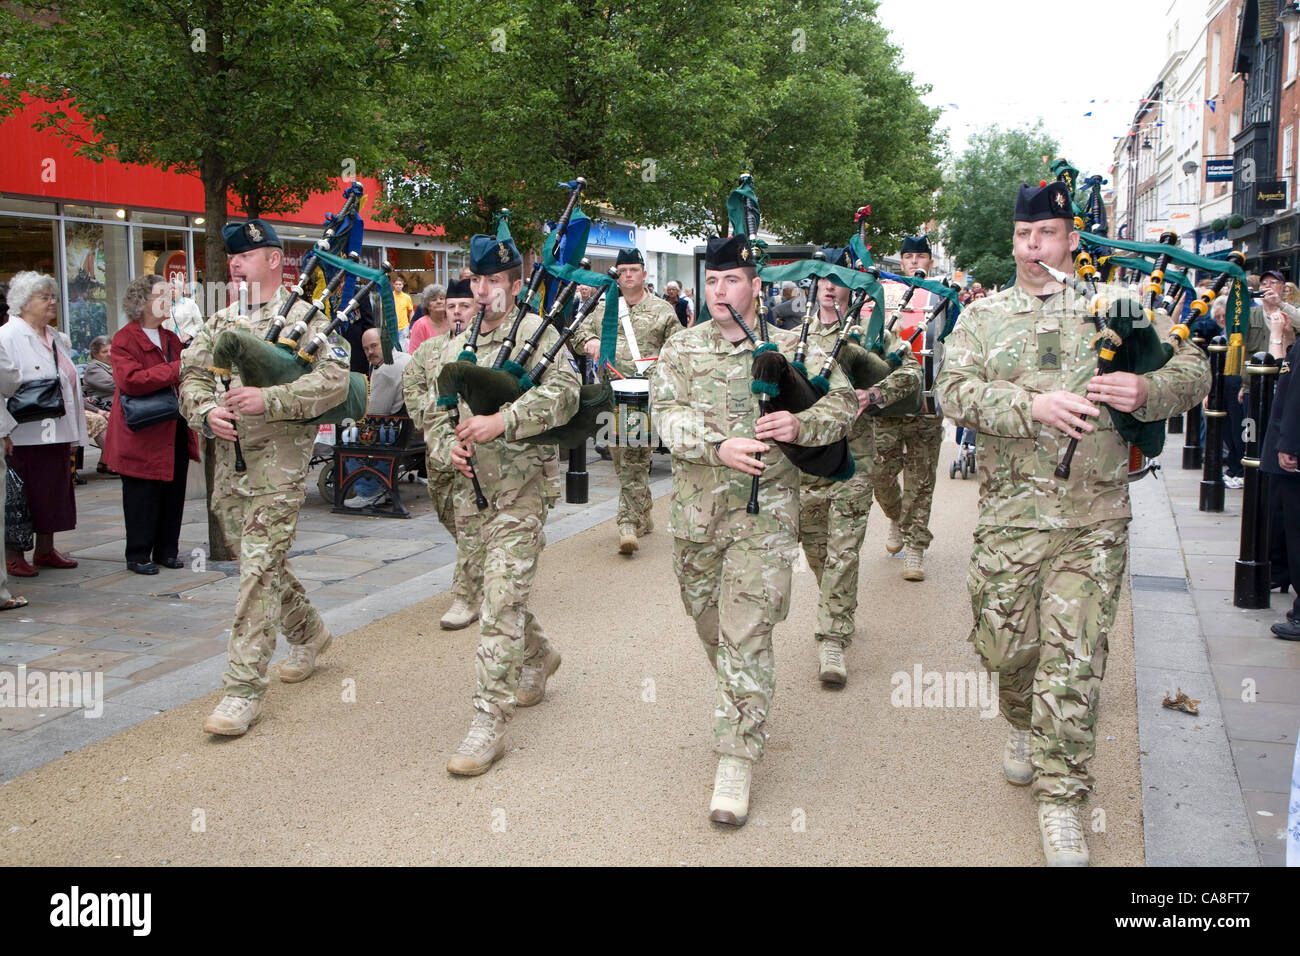 worcester-england-uk-wednesday-27th-june-2012-soldiers-from-2nd-battalion-CA8FT7.jpg